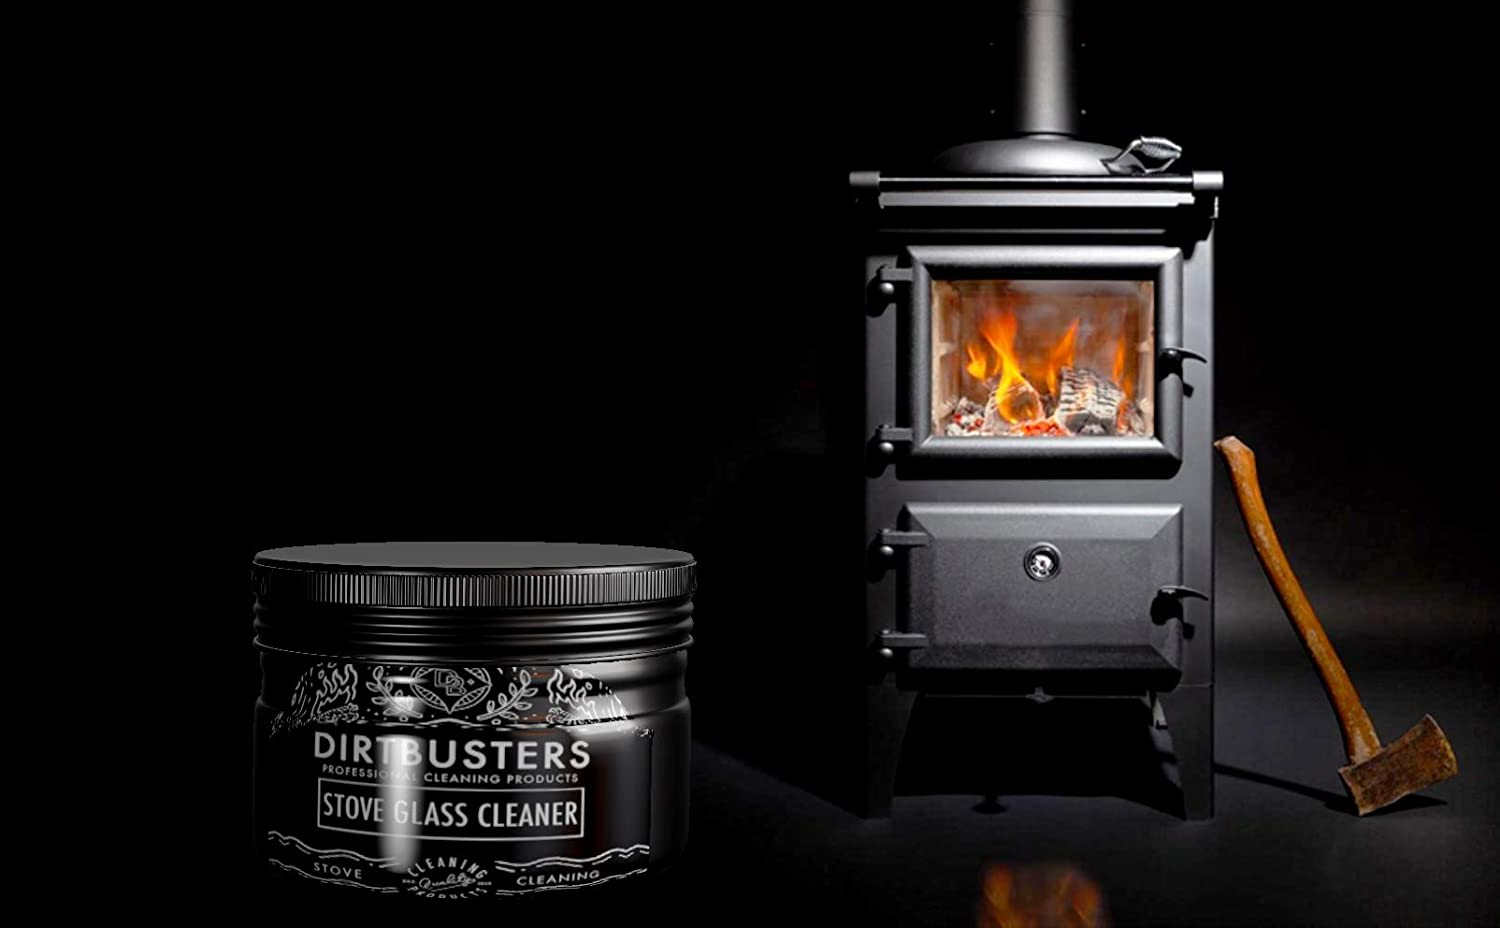 Buy Dirtbusters Stove Glass Cleaner Professional stove glass ...